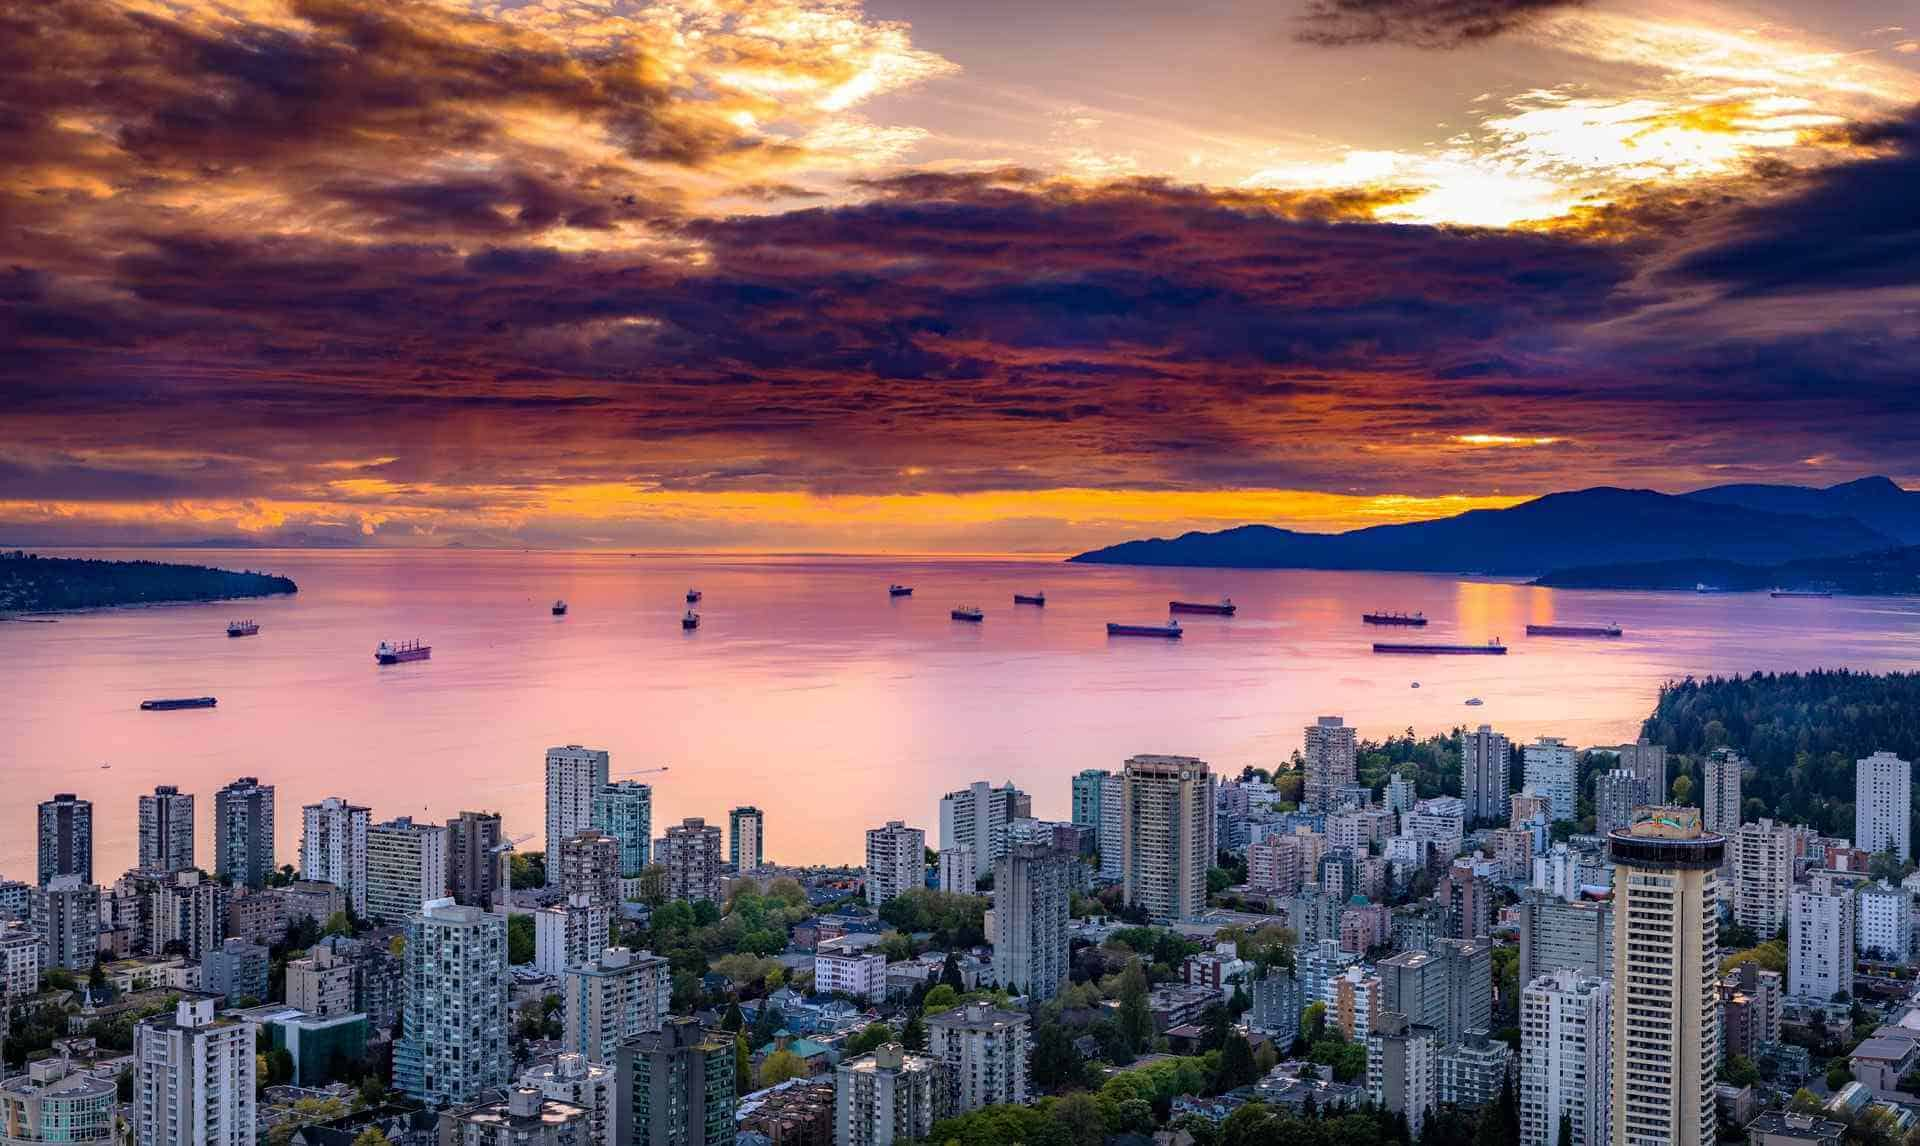 English Bay, Vancouver, Canada